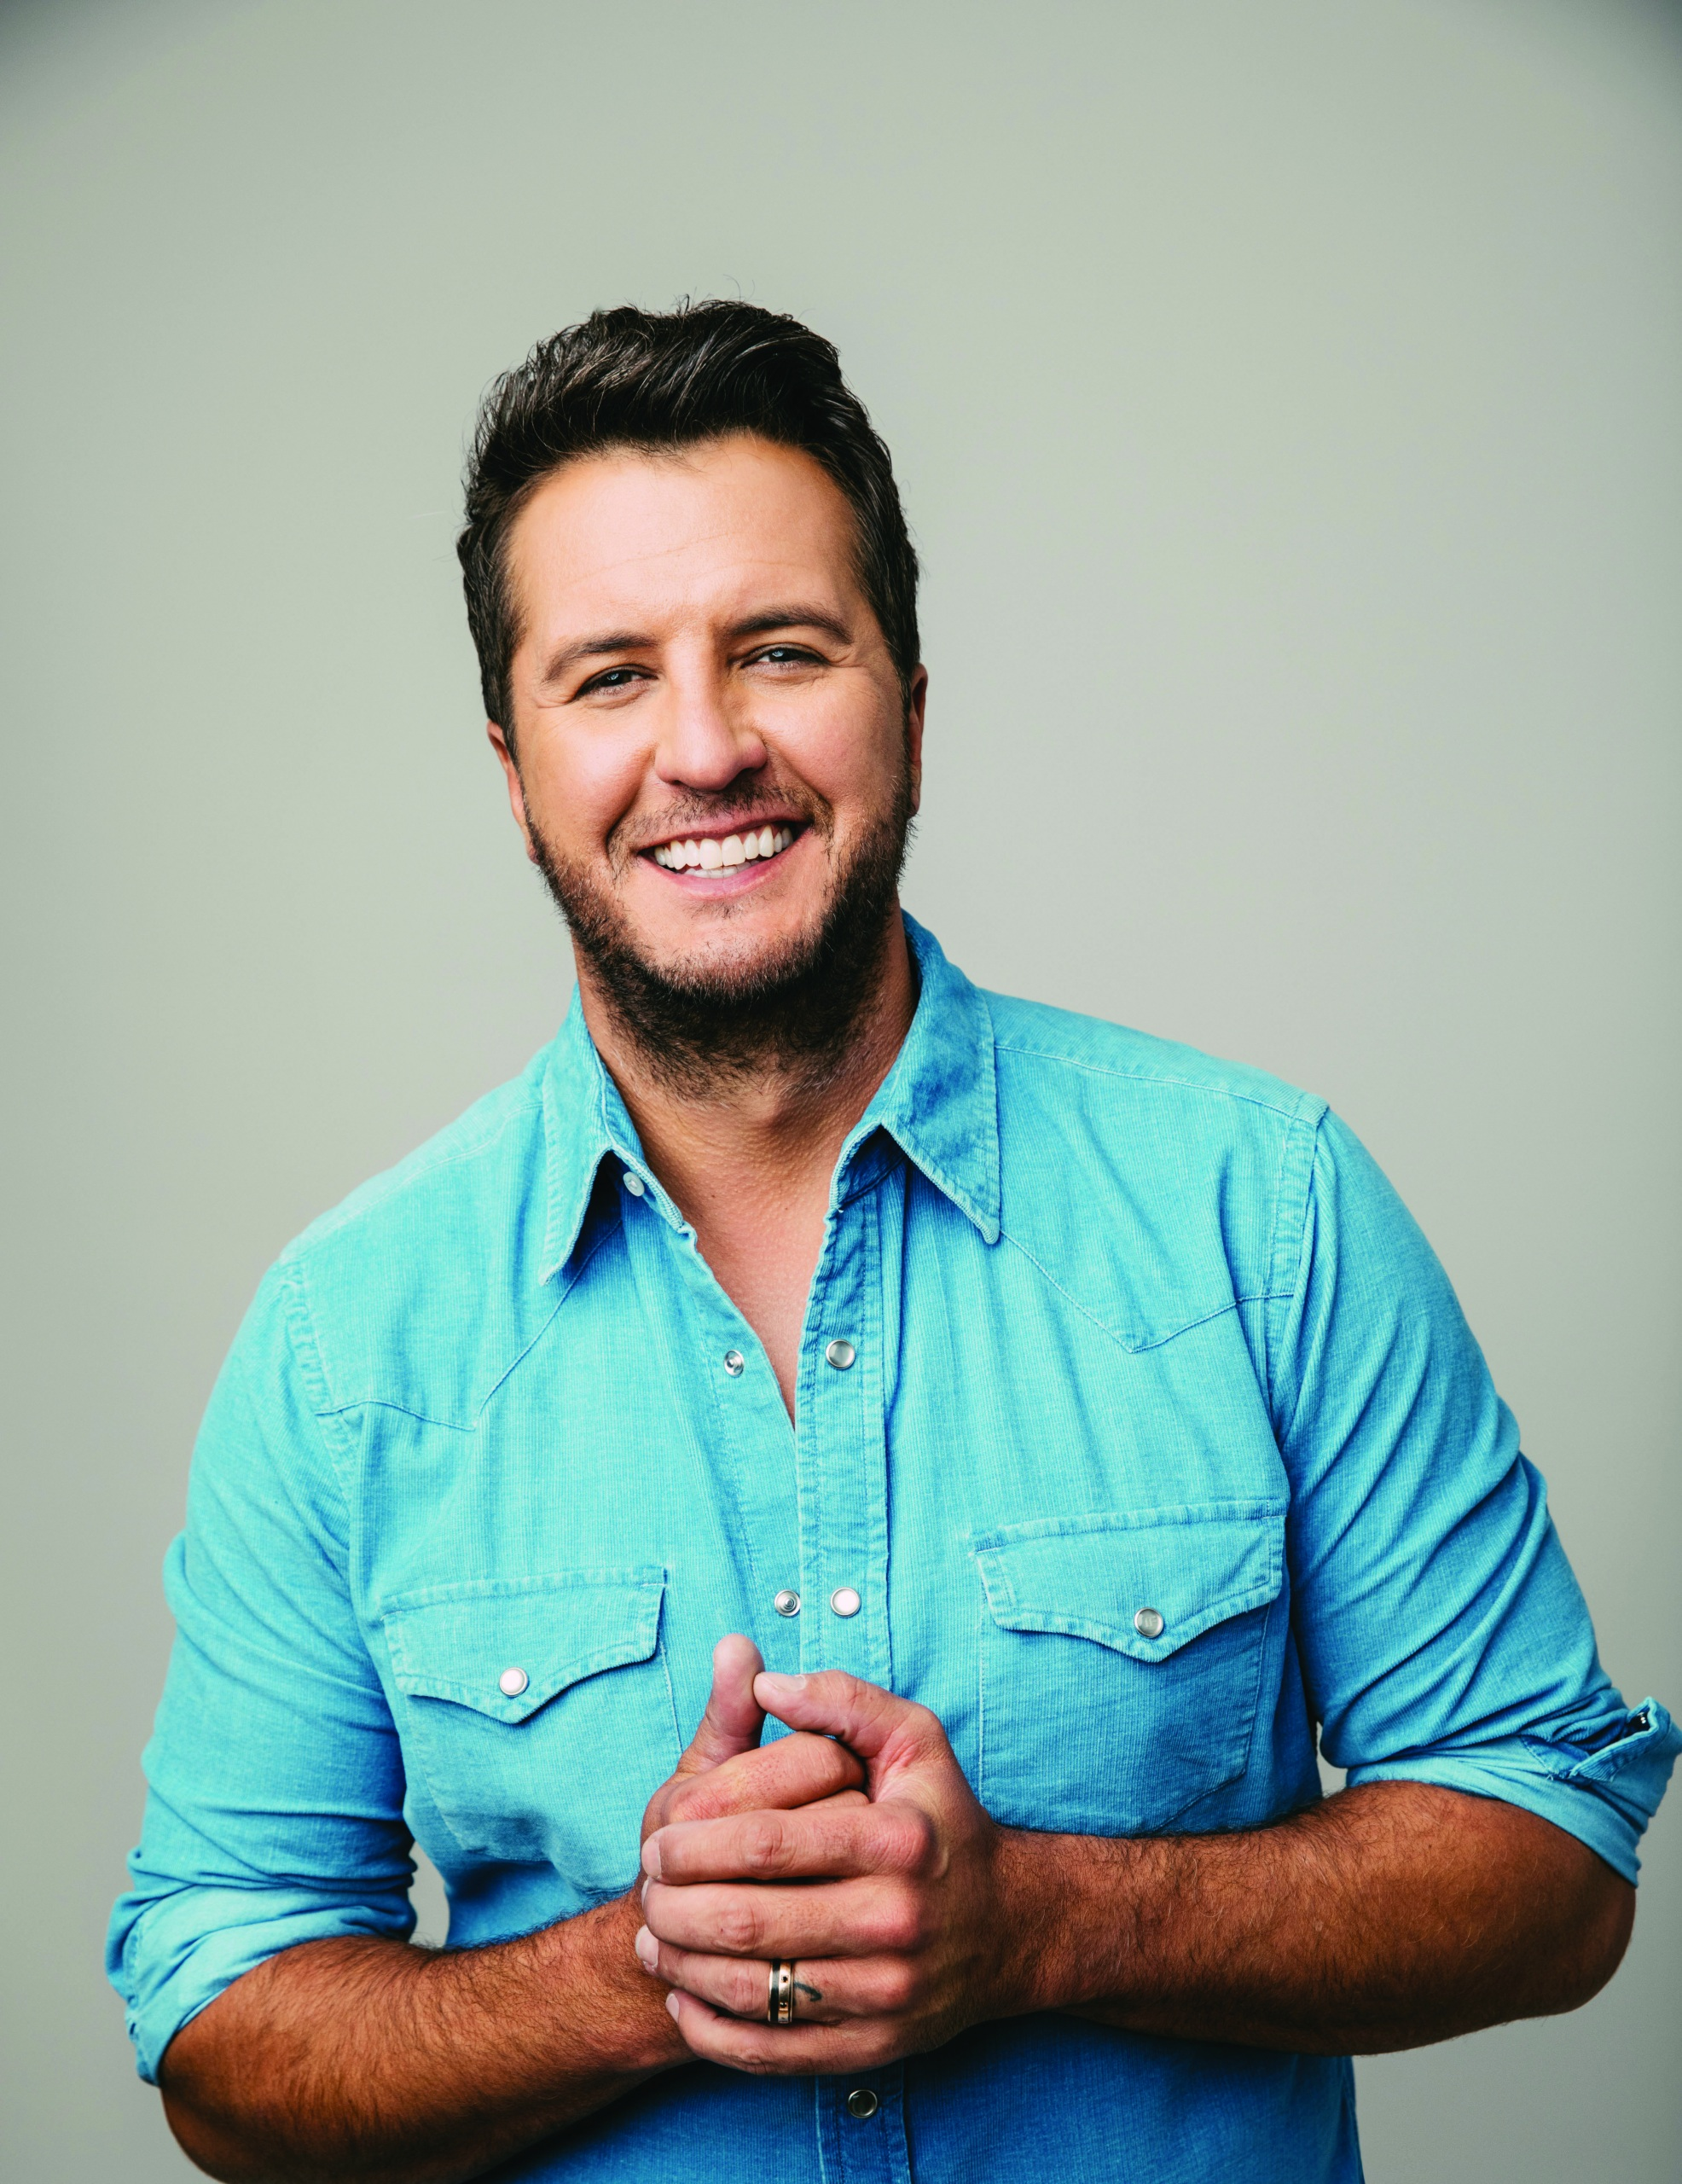 LUKE BRYAN CHATTED ABOUT AMERICAN IDOL, A NEW DOCUMENTARY AND CLEARED UP A RUMOR WHEN HE APPEARED ON THE ELLEN DeGENERES SHOW THIS WEEK.